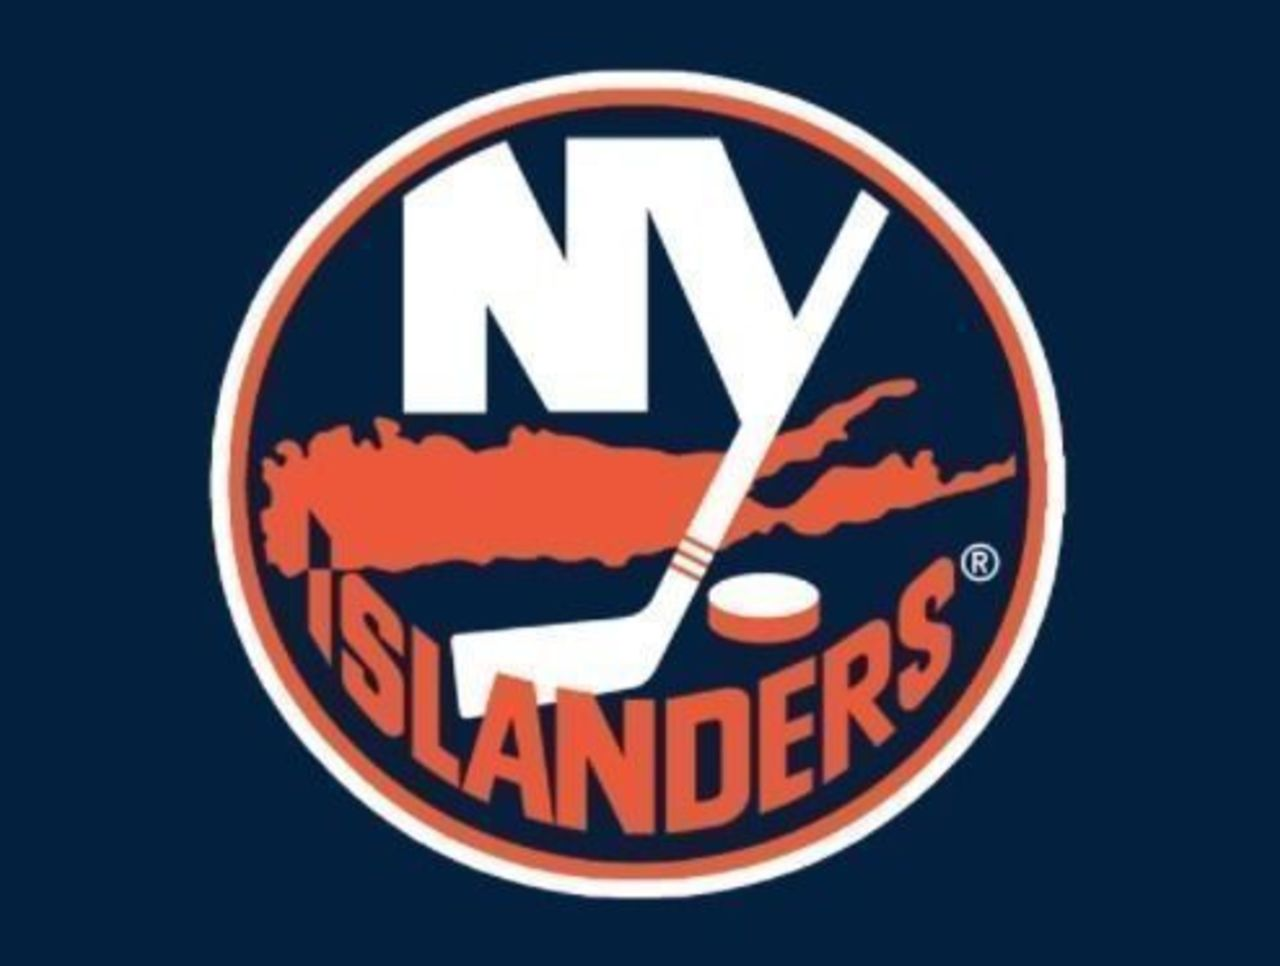 Hockey Logos Ranking The Nhl S 100 Greatest Logos Nos 20 1 Thescore